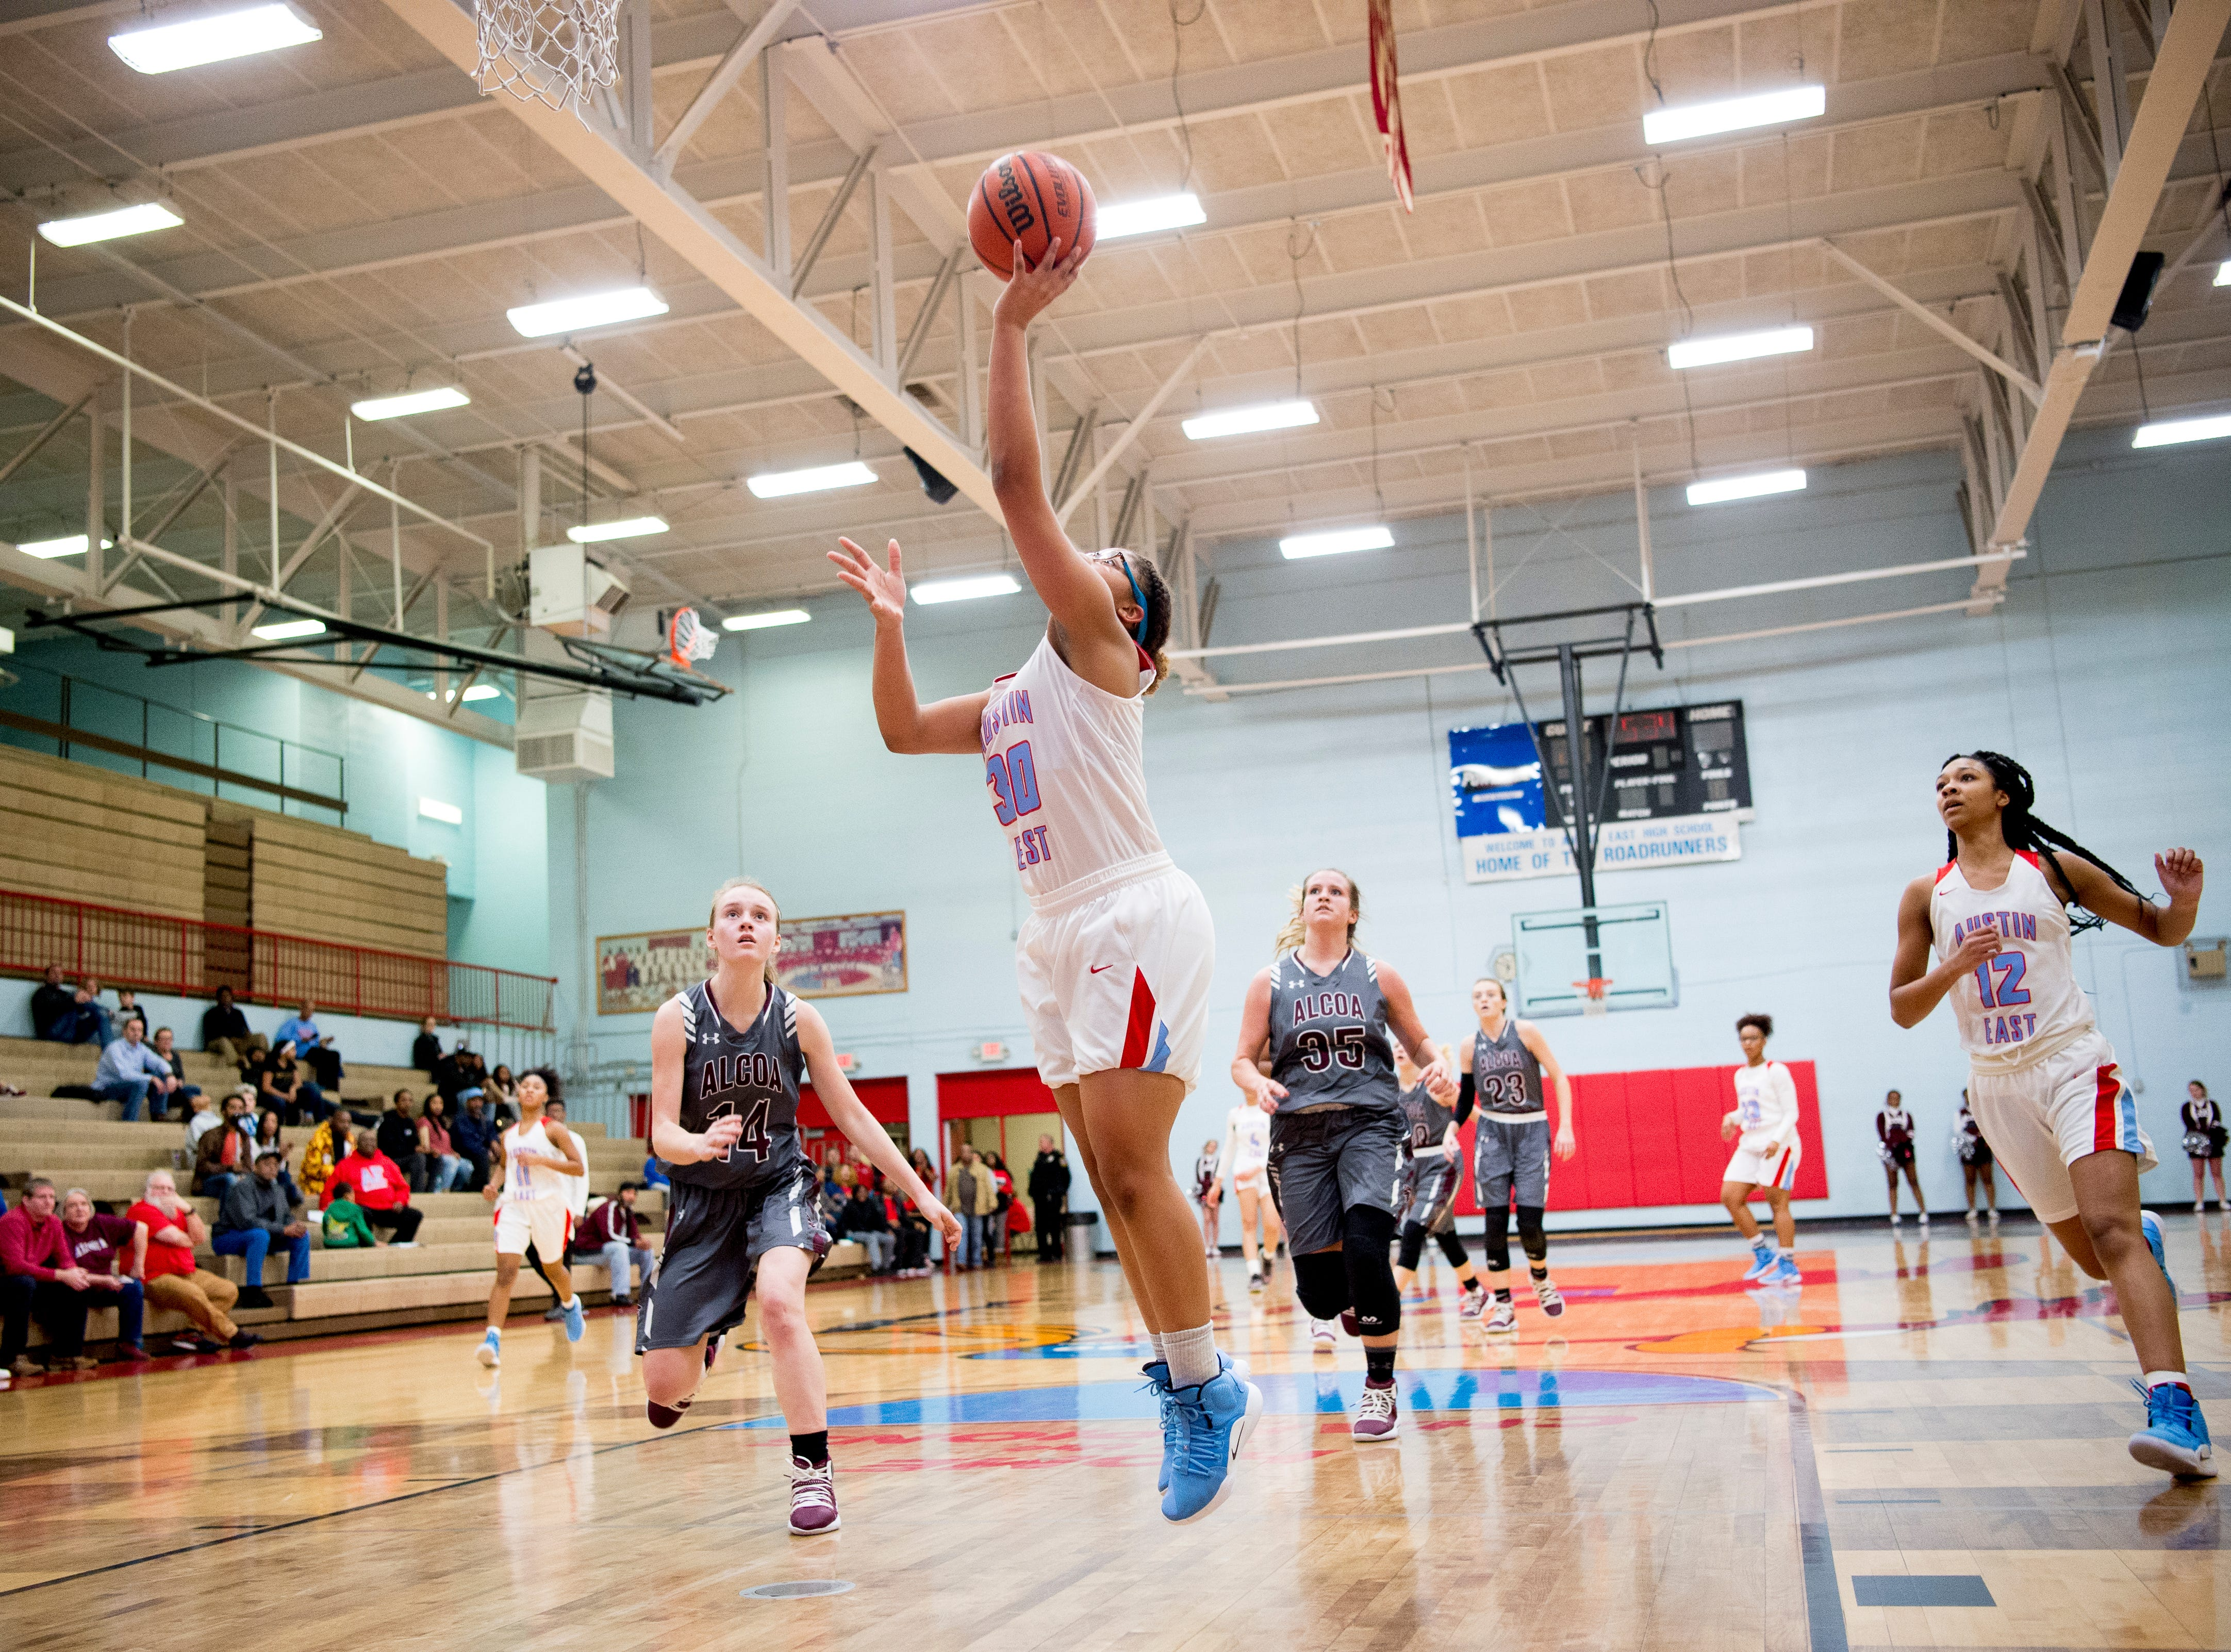 Austin-East's Ahya Moreno (30) shoots a layup during a game between Austin-East and Alcoa at Austin-East High School in Knoxville, Tennessee on Friday, January 18, 2019.